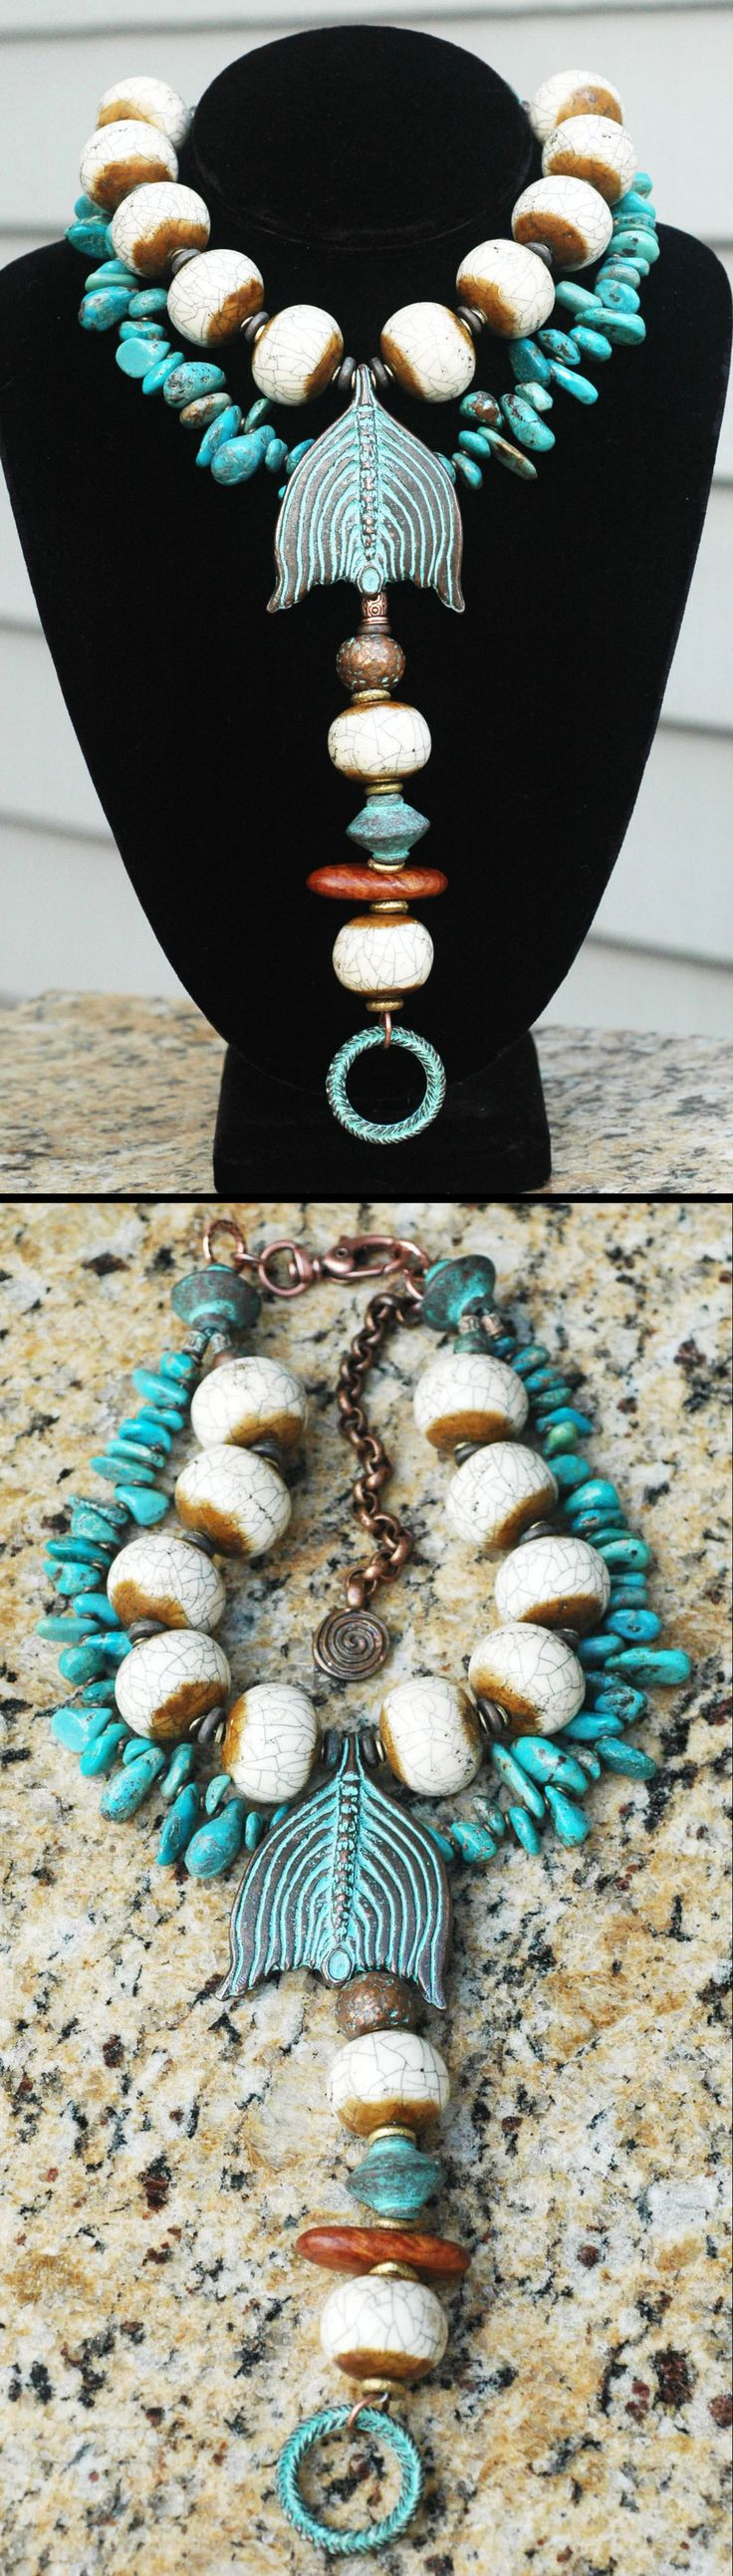 """Custom Necklace Design: Beautiful Bone & Turquoise Drop Pendant Collar Necklace I just created this fascinating statement necklace for a regular client from some of her old necklaces that she needed to """"recycle"""" into something new and bold and fresh! Contact me to """"recycle"""" your old pieces kelly@xogallery.com"""